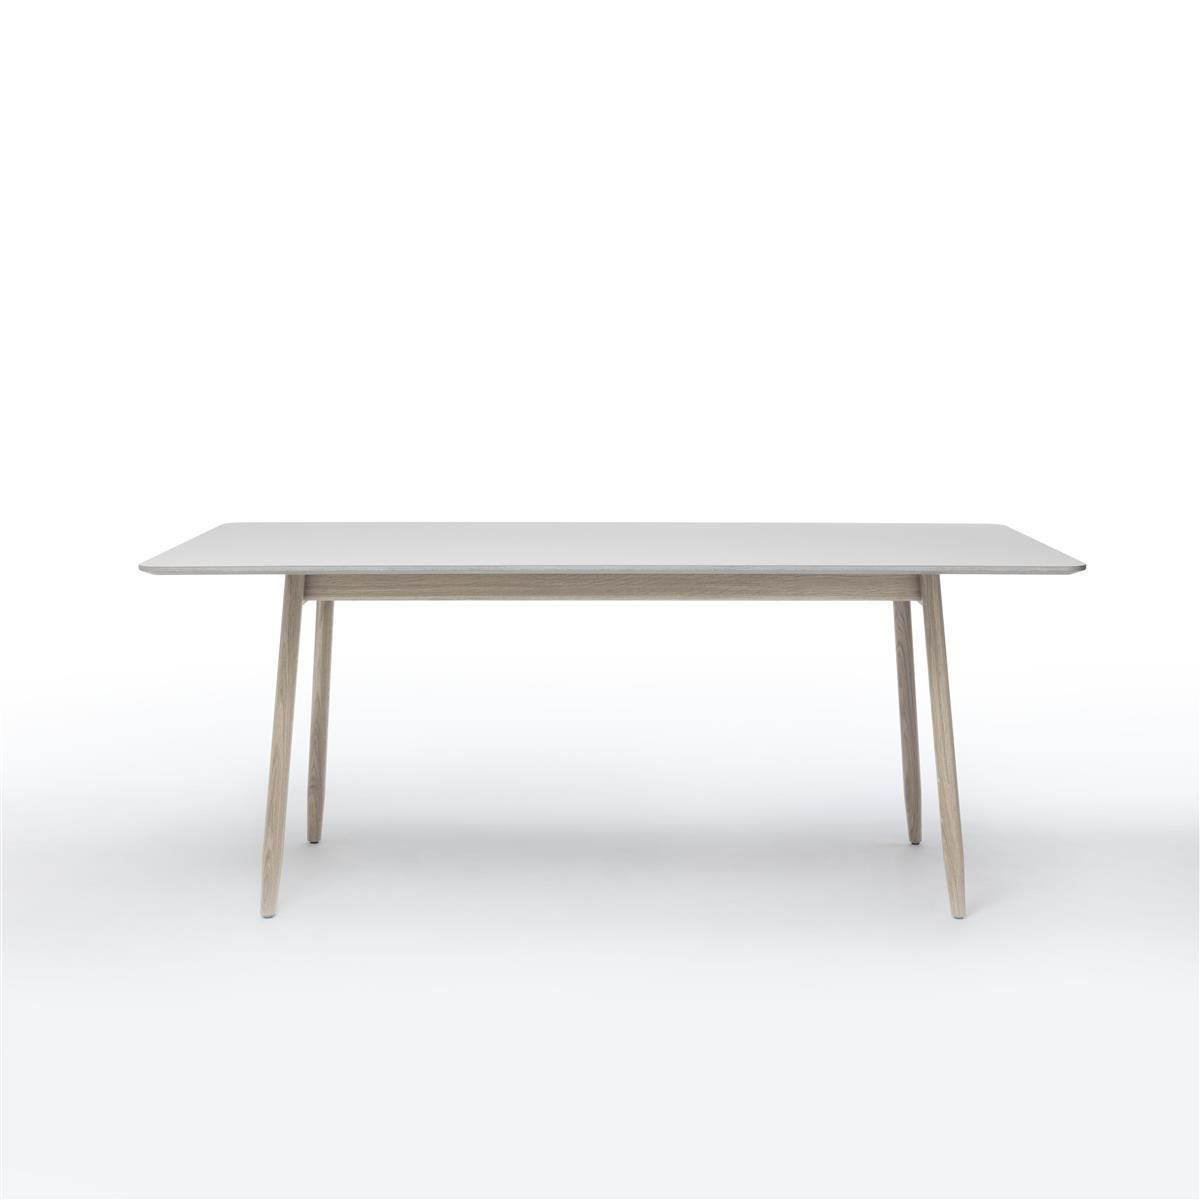 Icha Table - Mushroom & White Oiled Oak